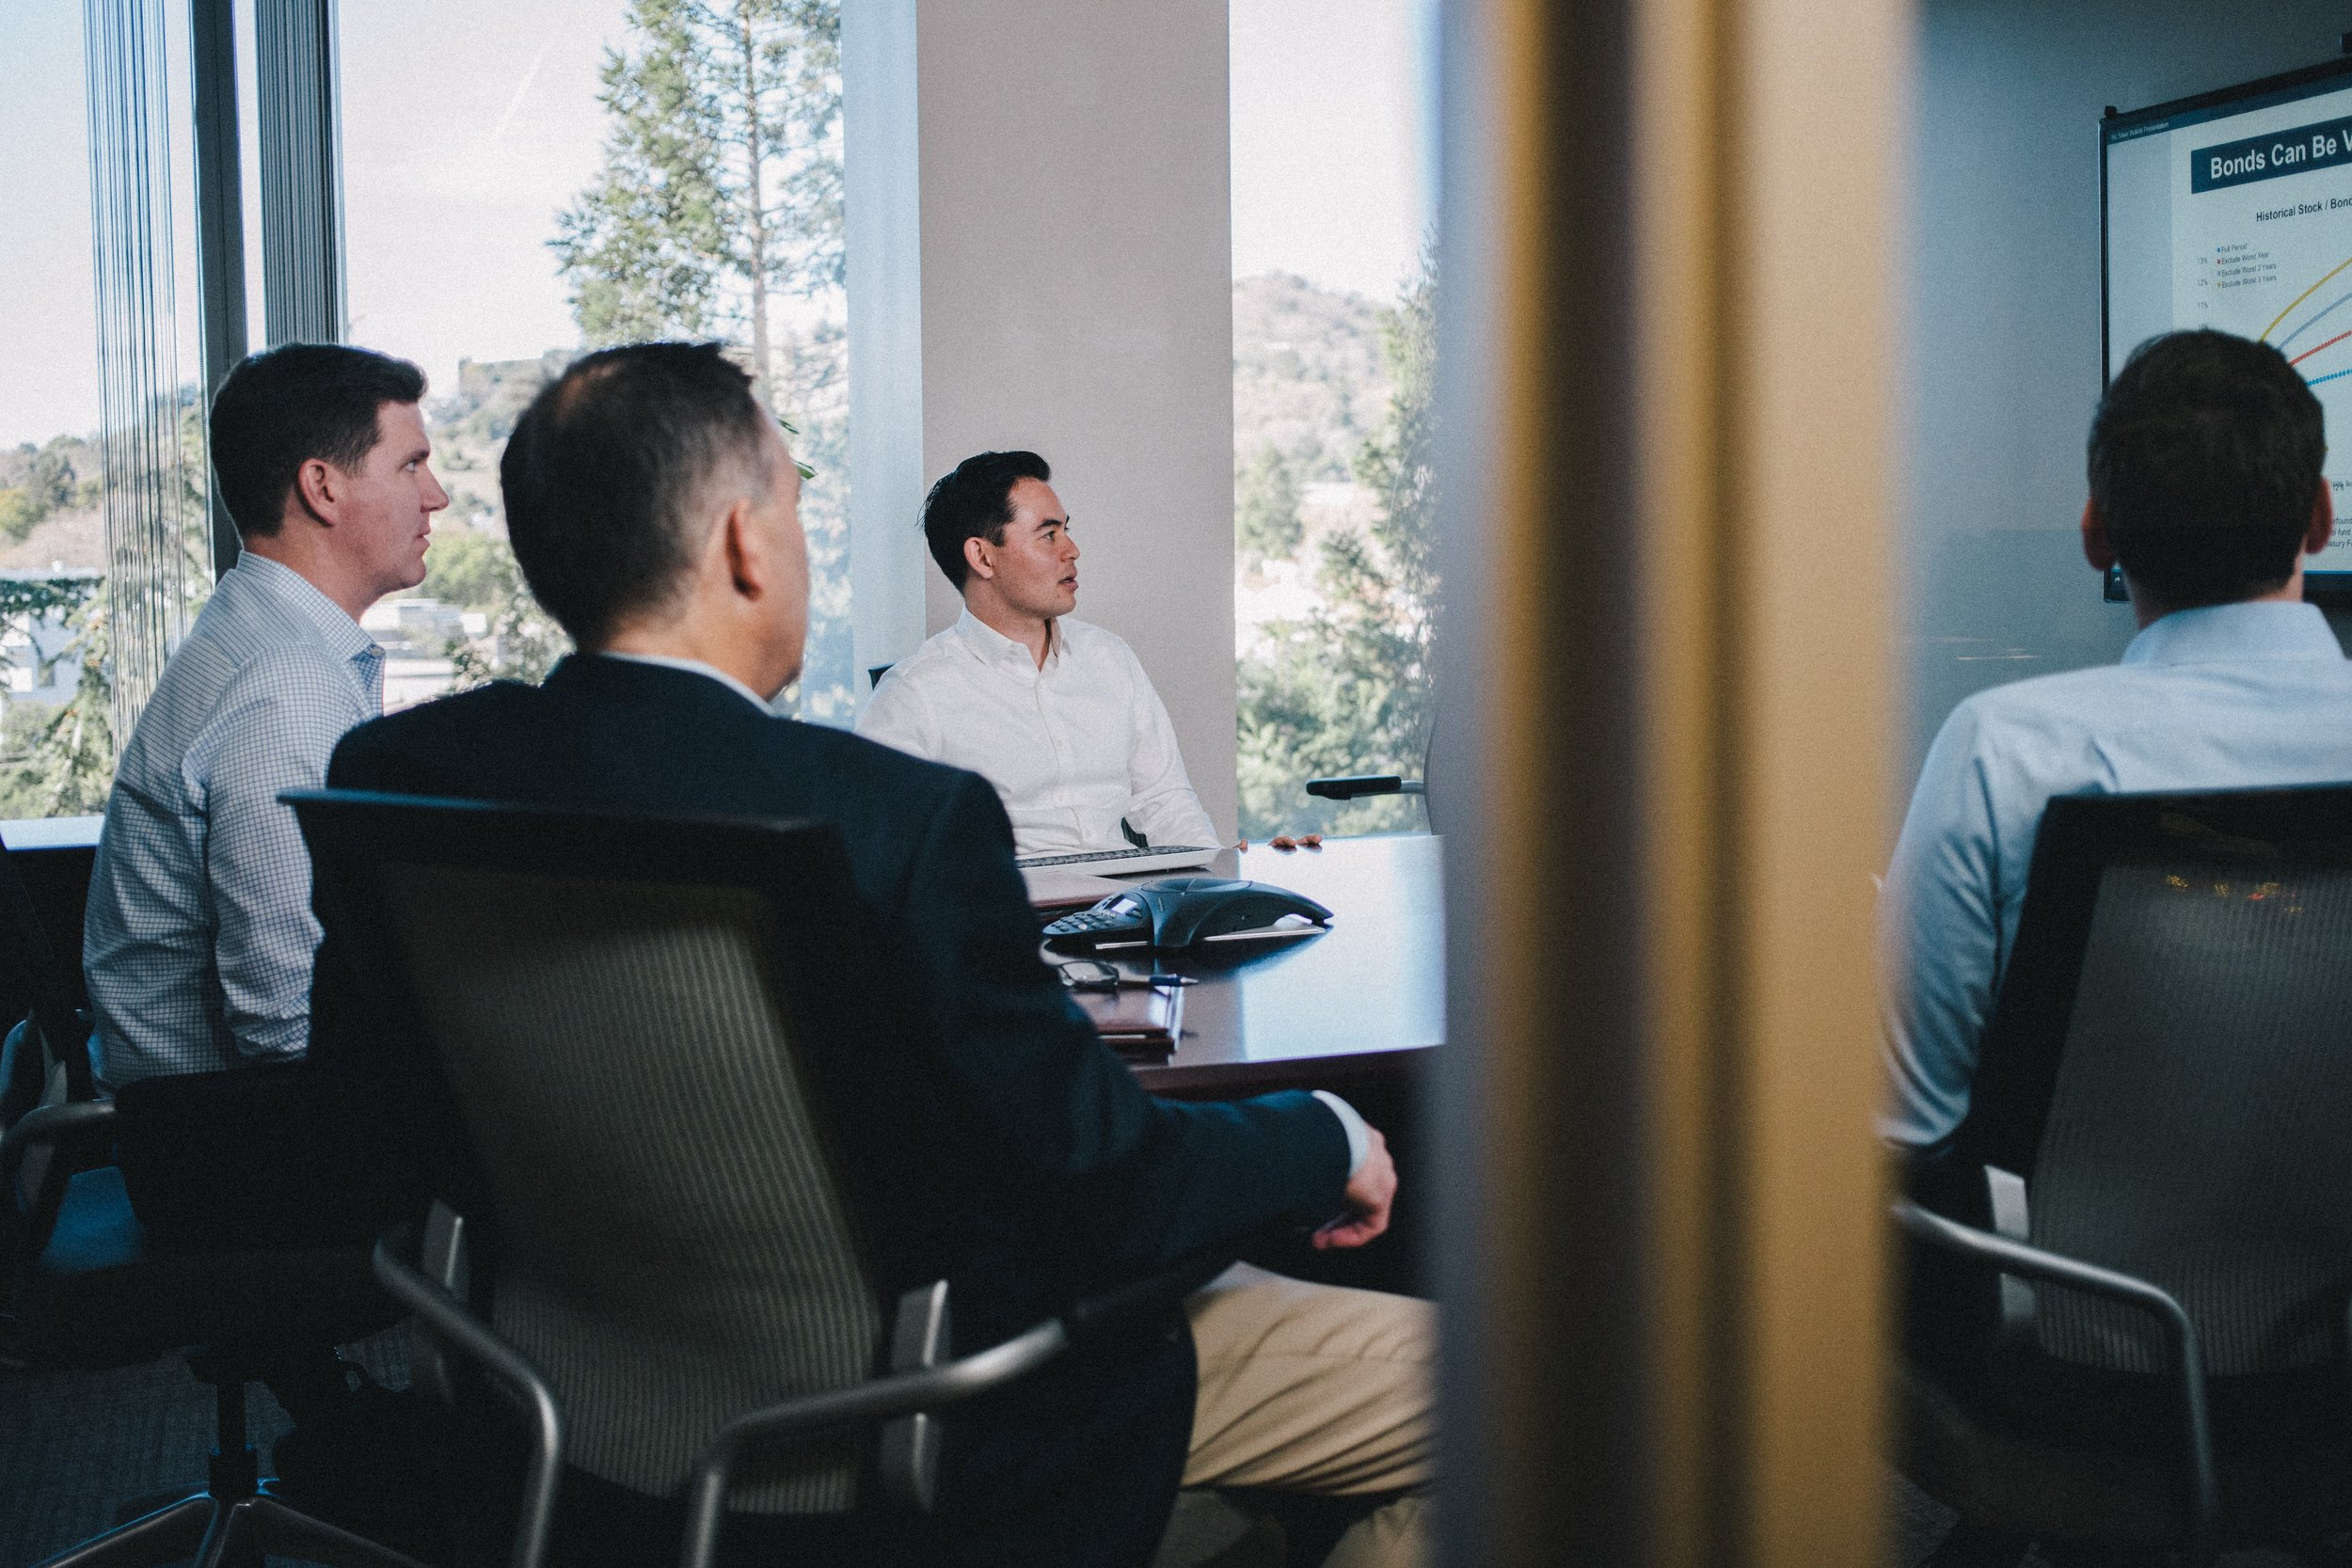 Our Process - No two clients - let alone no two people - are exactly alike. Our relationships depend upon a deep familiarity with your circumstances and objectives. Together, we'll identify your needs, build a plan, and help you see it through.